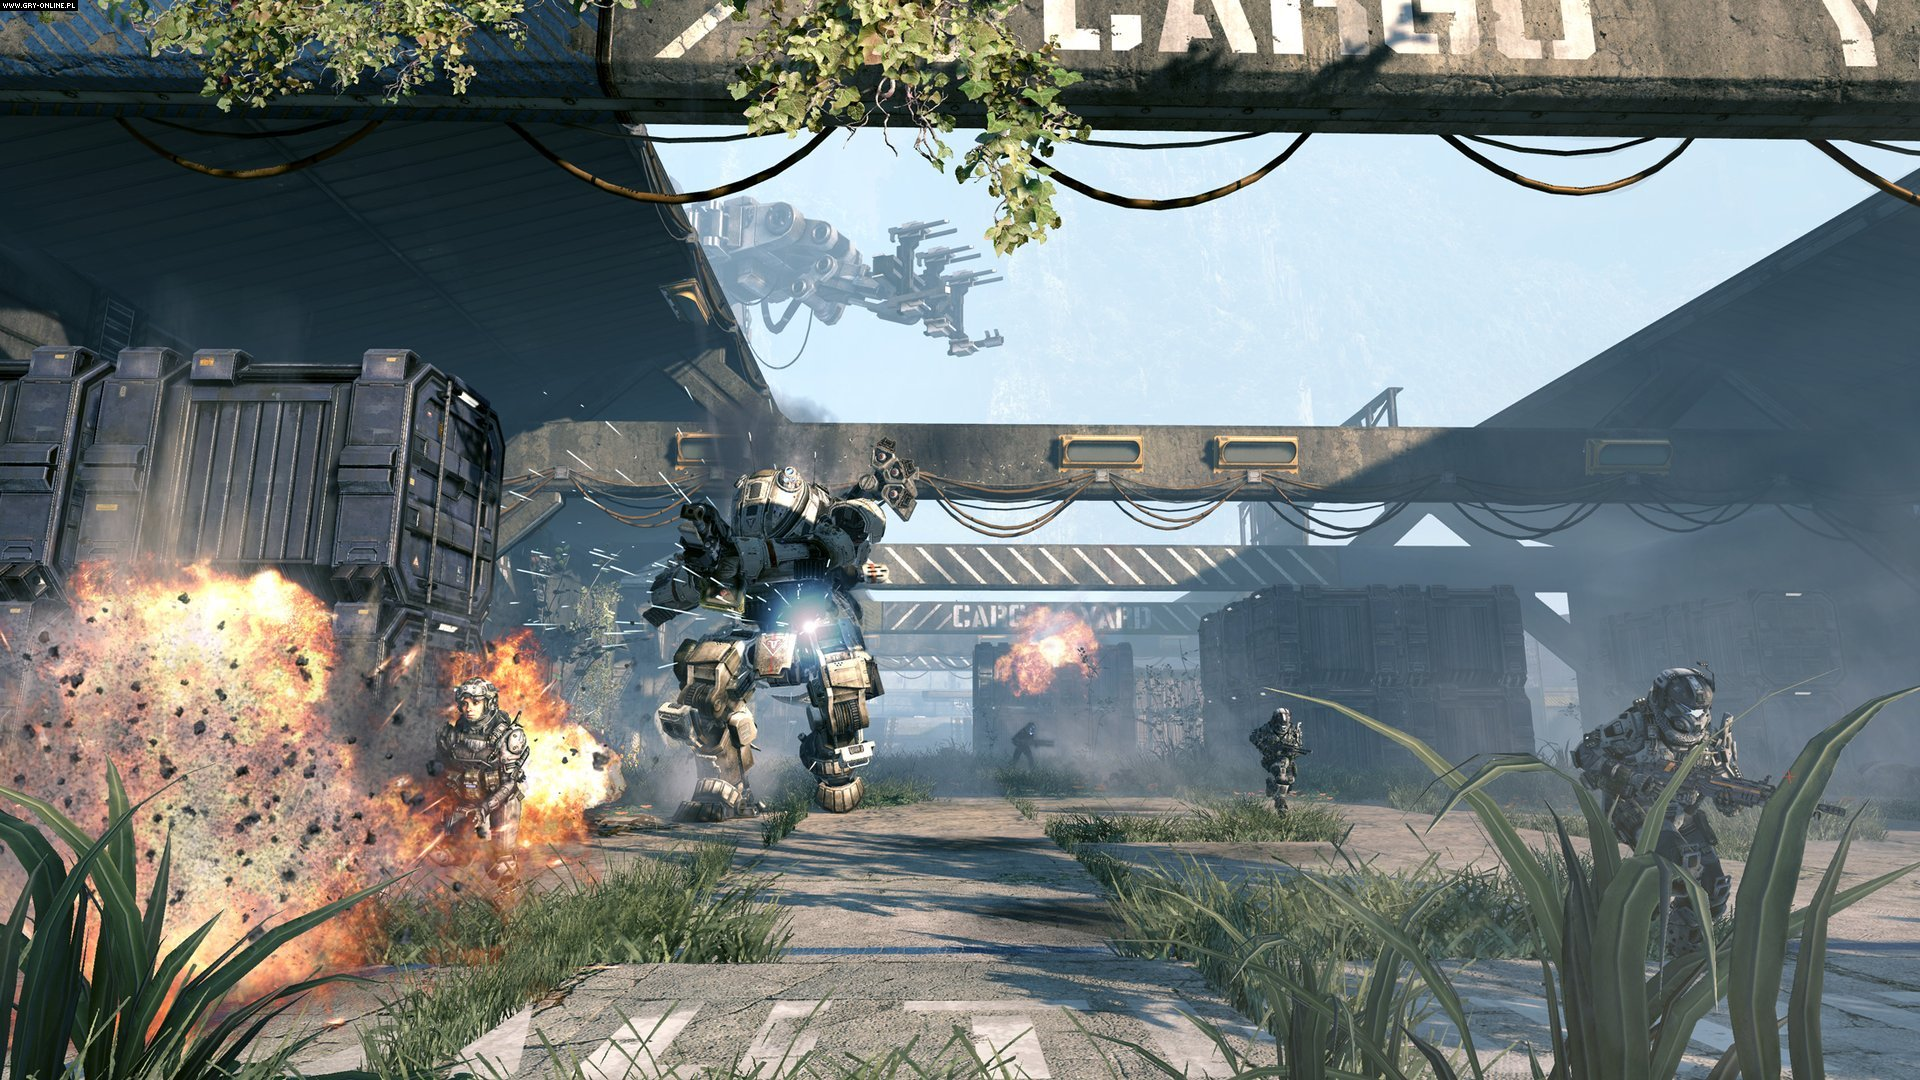 Titanfall PC, X360, XONE Games Image 1/39, Respawn Entertainment, Electronic Arts Inc.